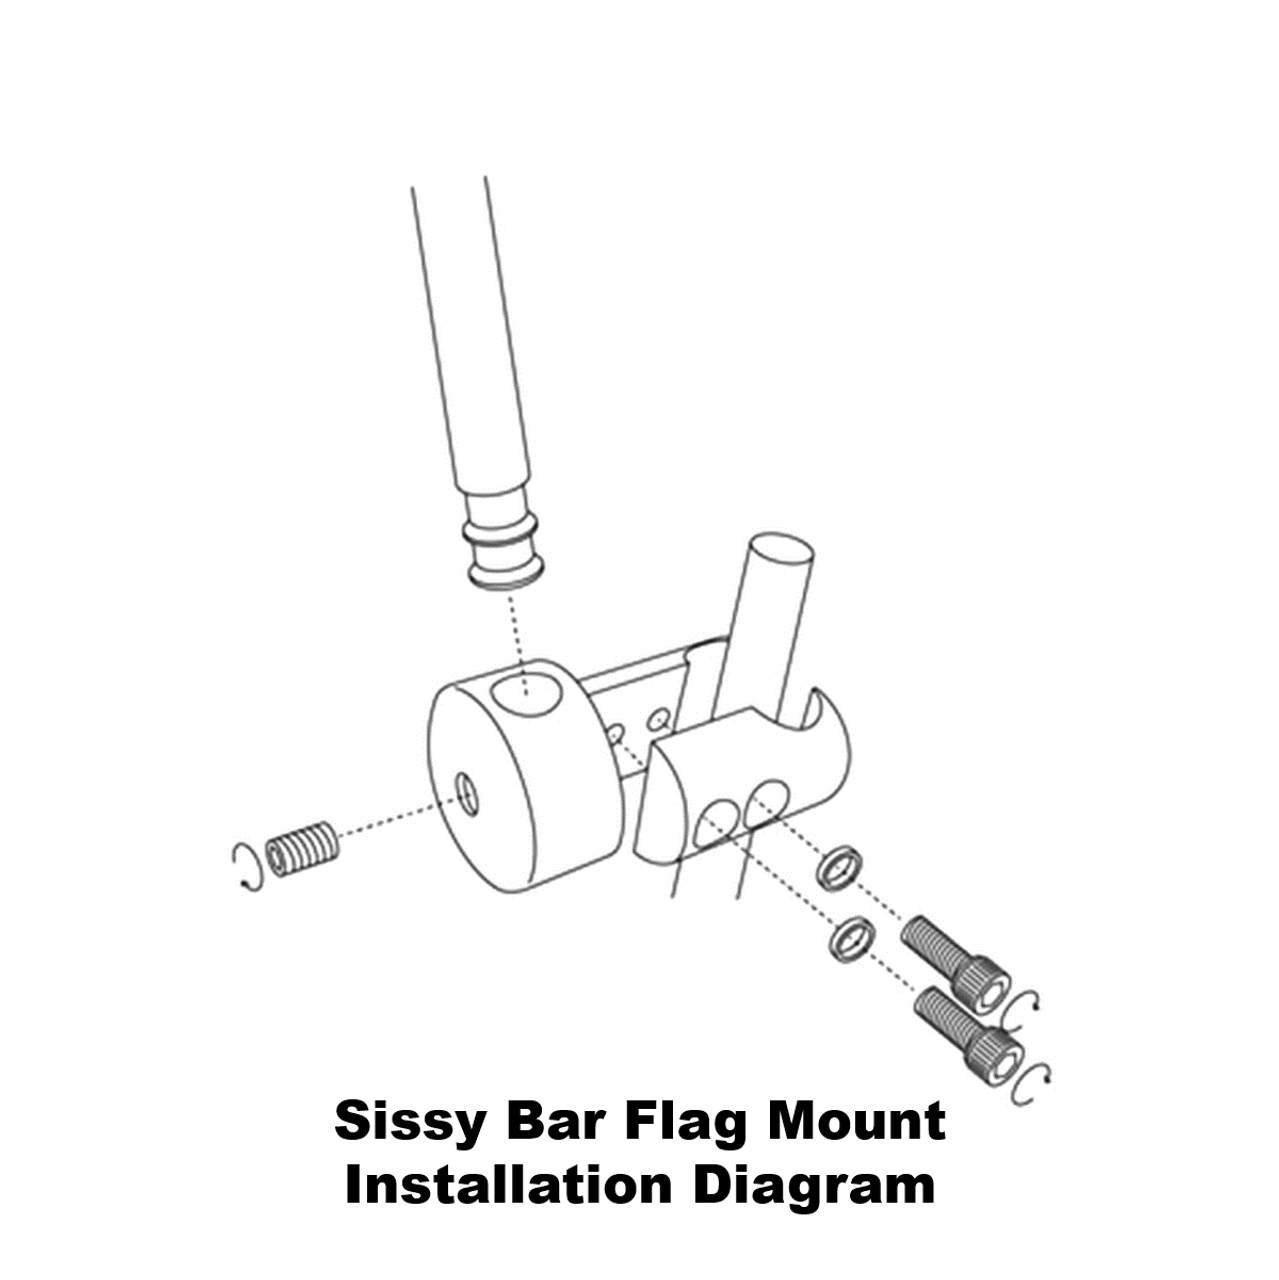 RDSB Sissy Bar mount Installation diagram (exploded view)